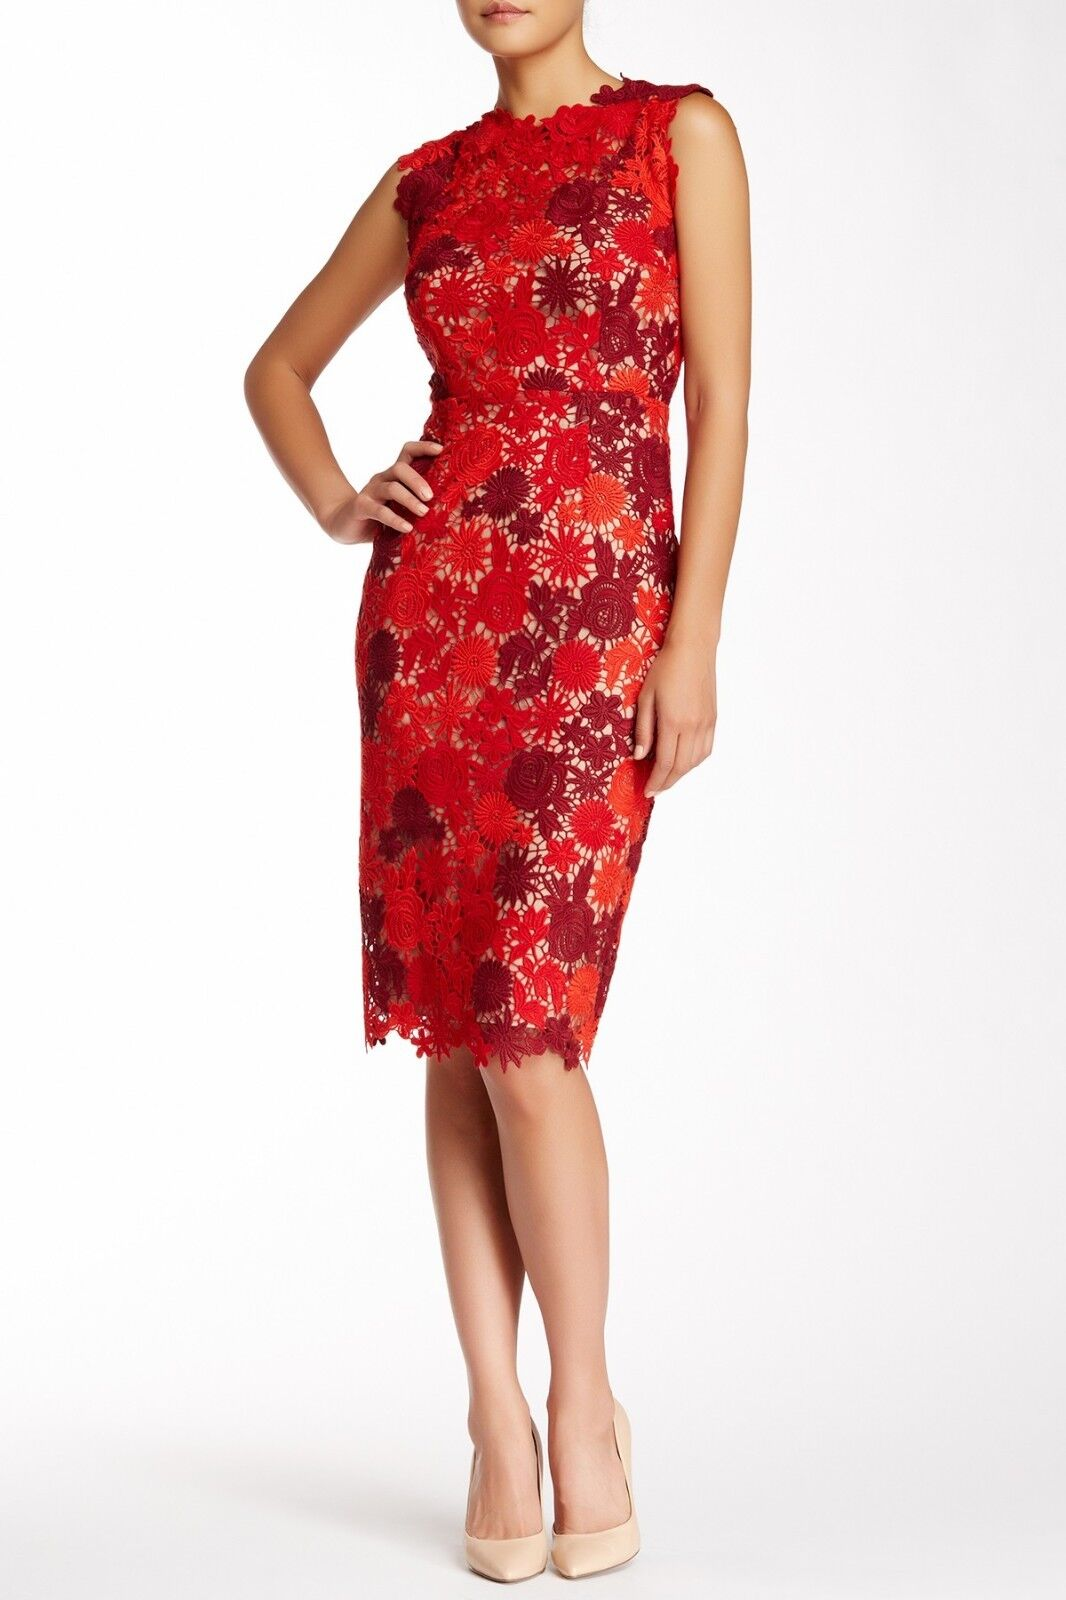 Mikael Aghal Couleurblock Floral dentelle gaine robe (taille 12)